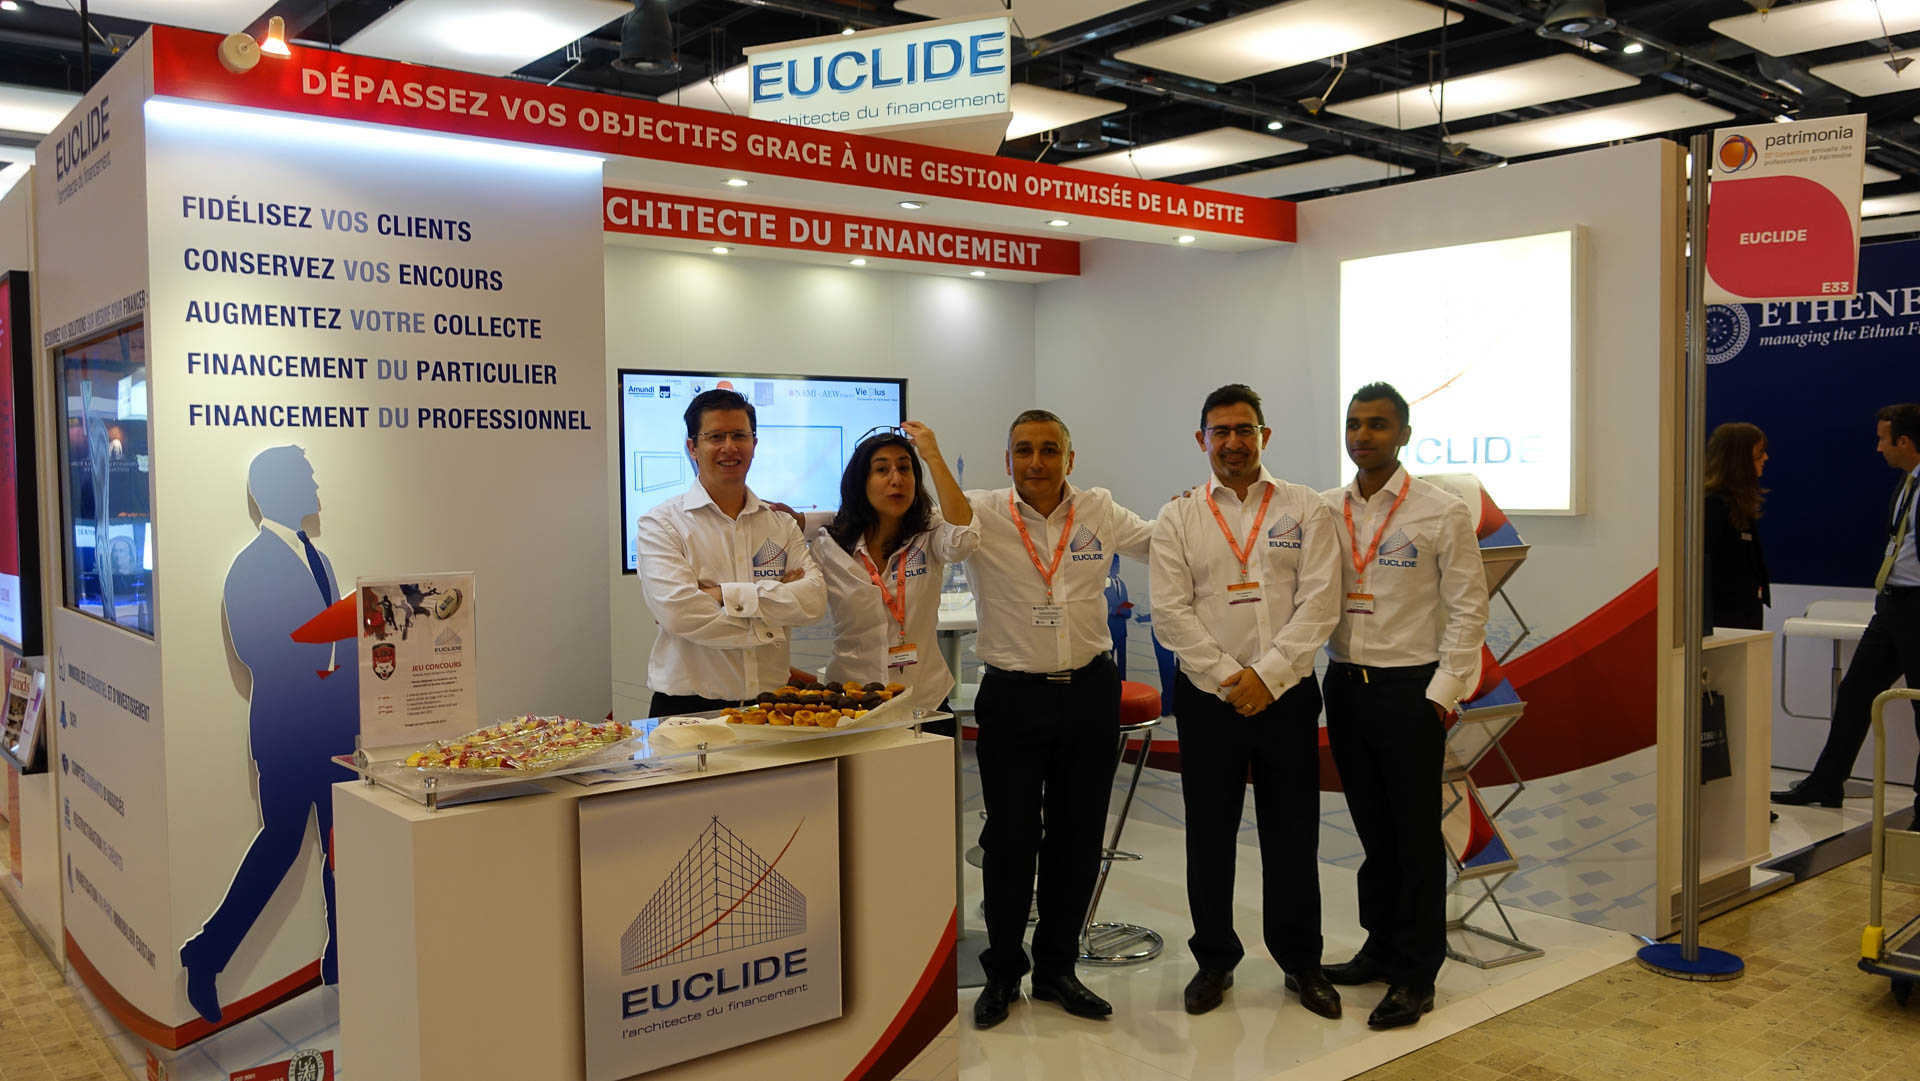 Salon-patrimonia-2015-stand-conference-Euclide-financement